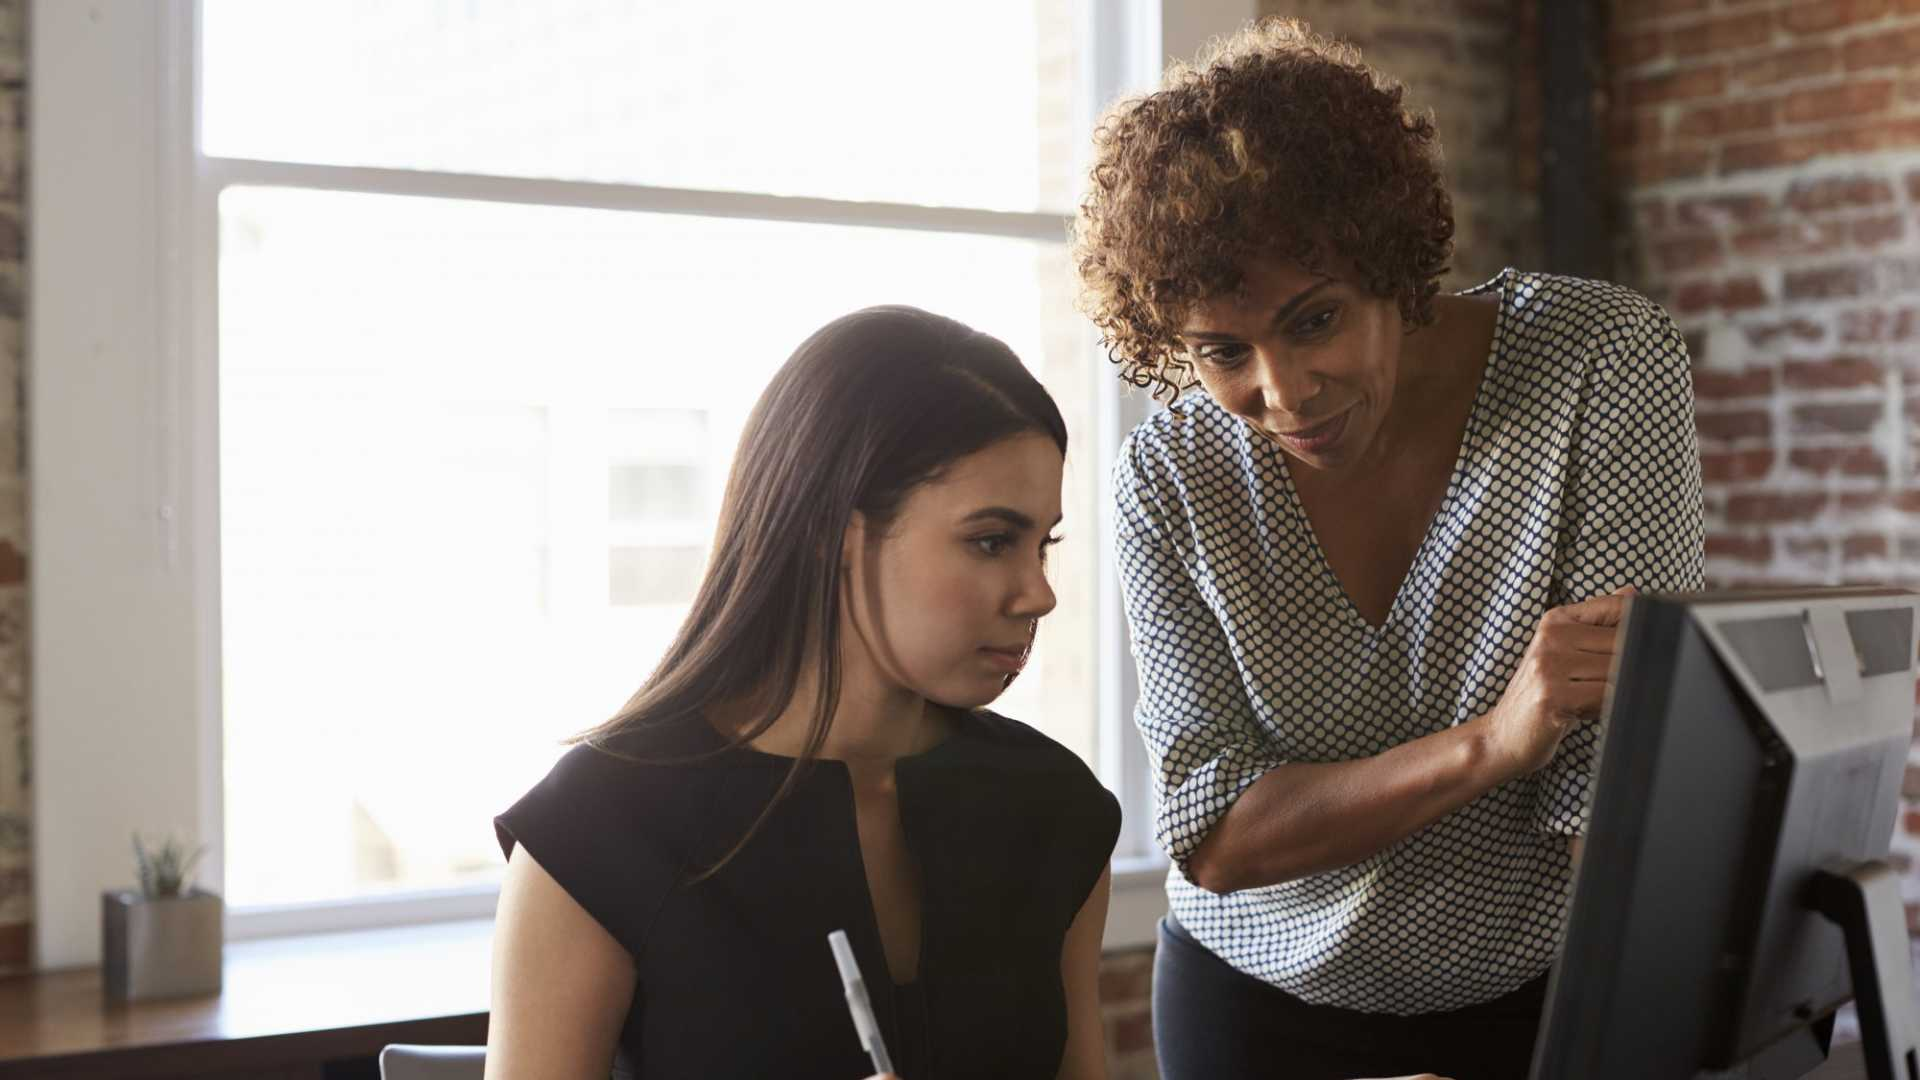 There is a need to bring back feminine values of trust, receiving, non-competition, and balance into the workplace.